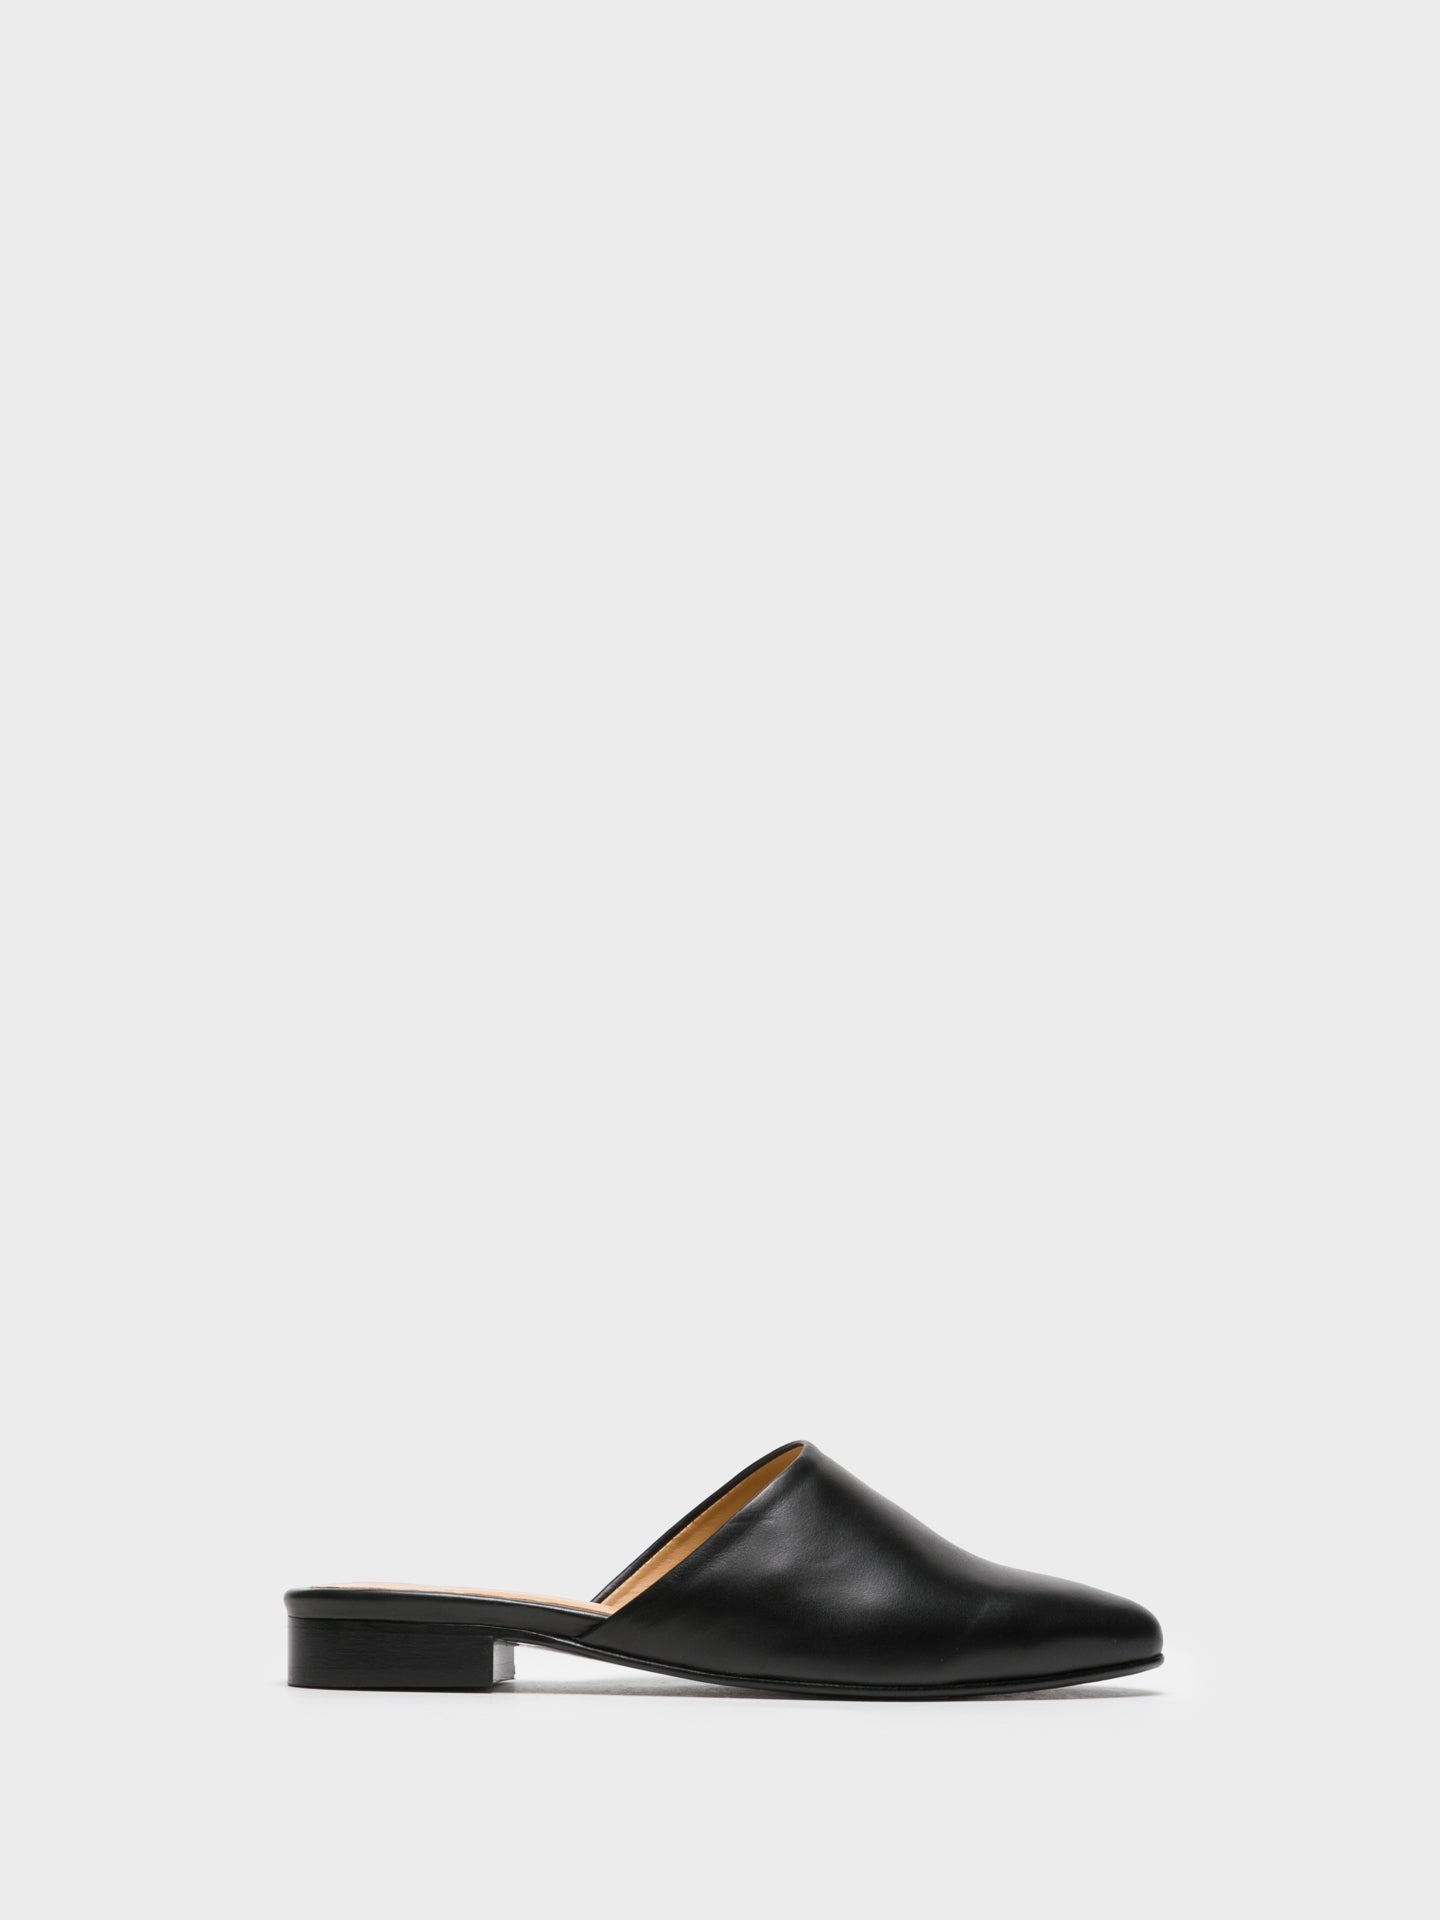 Only2me Mules mit spitzer Kappe in Schwarz